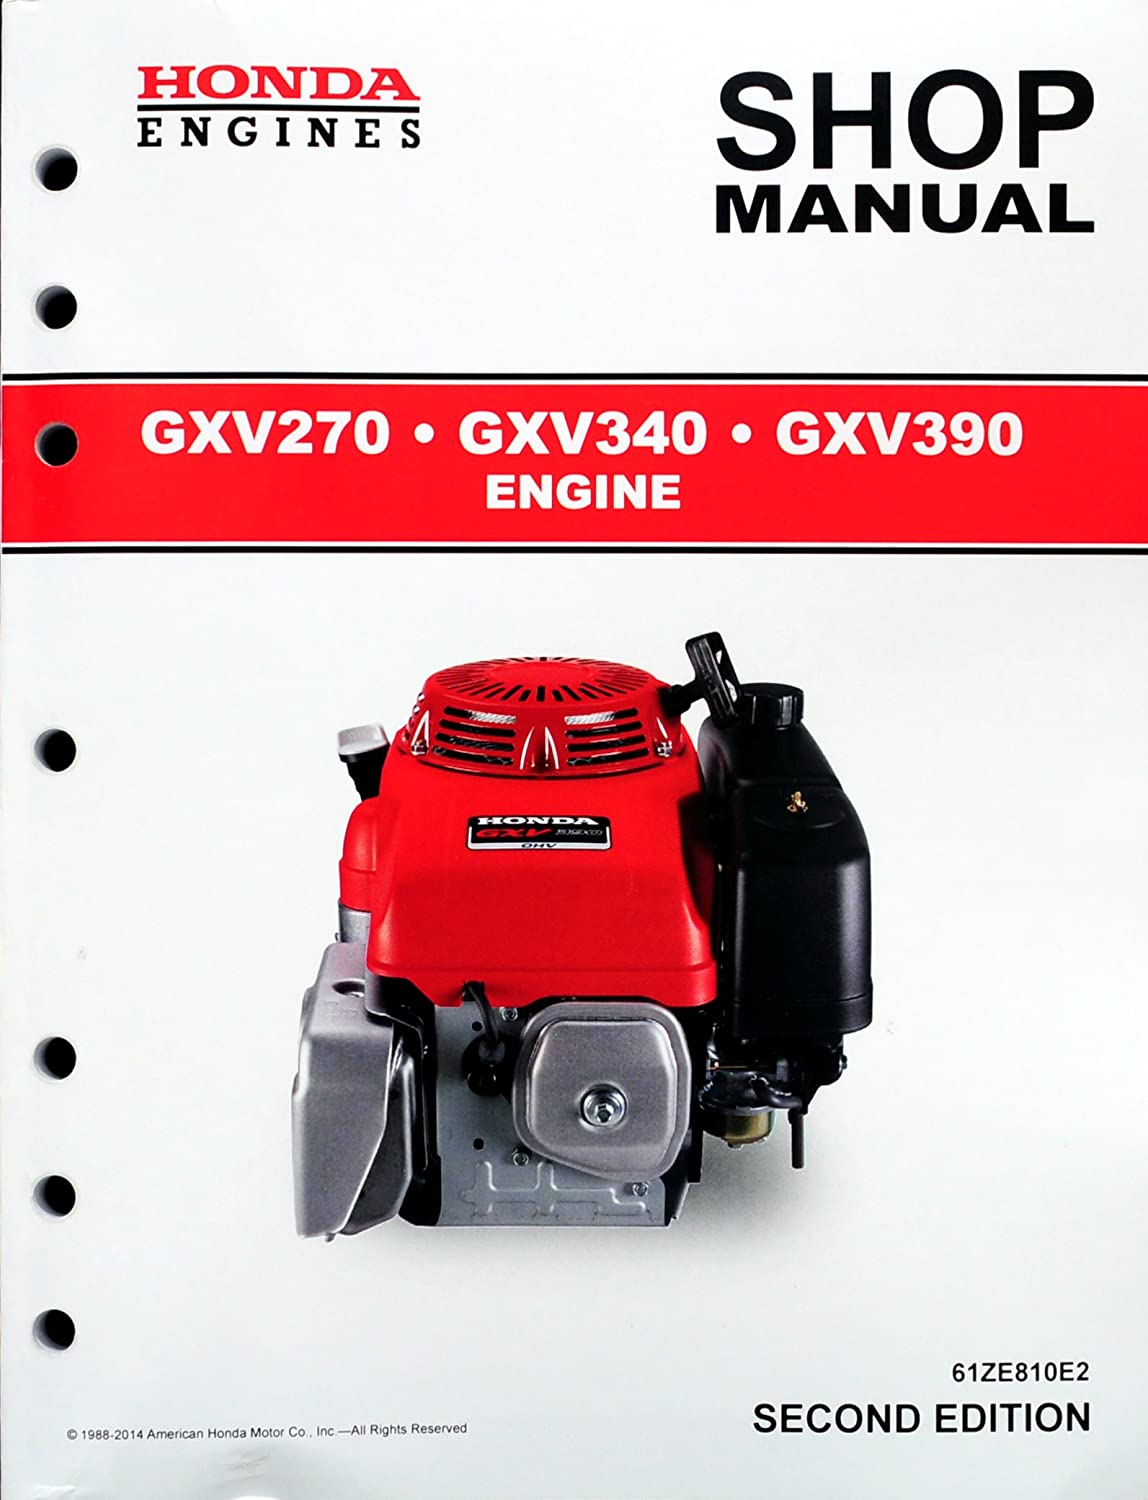 Honda Gx340 Electric Start Wiring Diagram Free For Gx390 Engine Parts With Gxv 340 Diagrams Motorcycles Schematics Gx